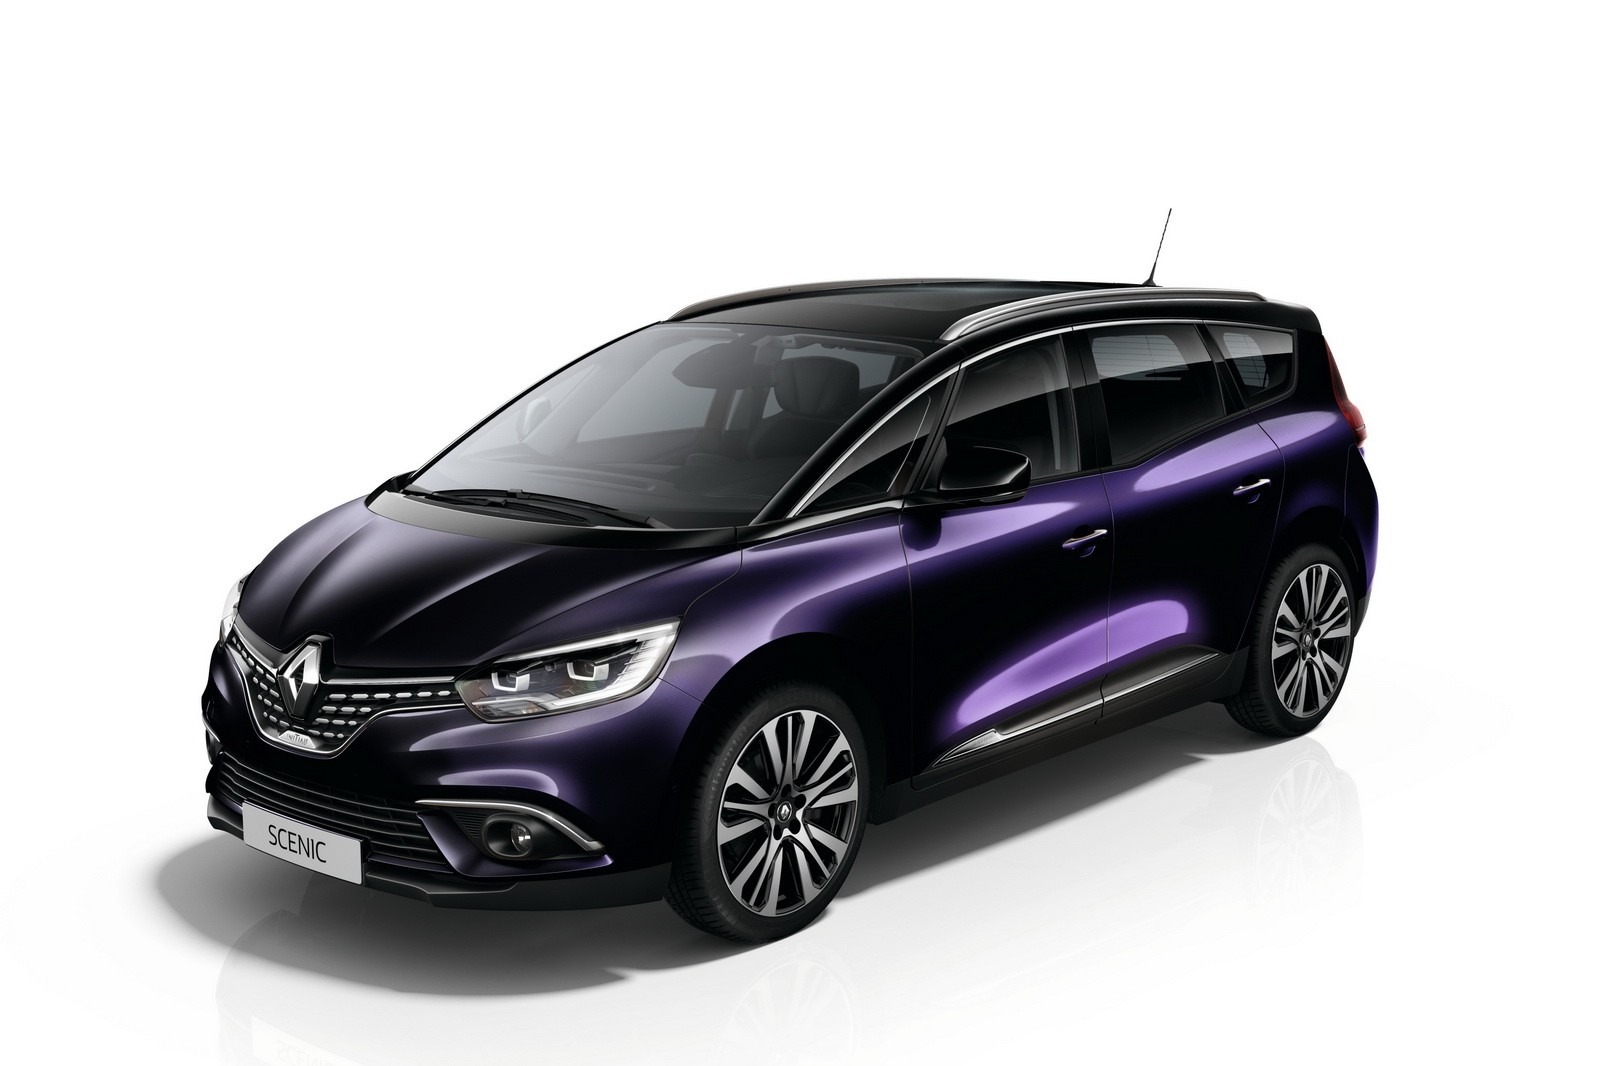 renault spruces up the scenic and grand scenic with initiale paris trim level autoevolution. Black Bedroom Furniture Sets. Home Design Ideas